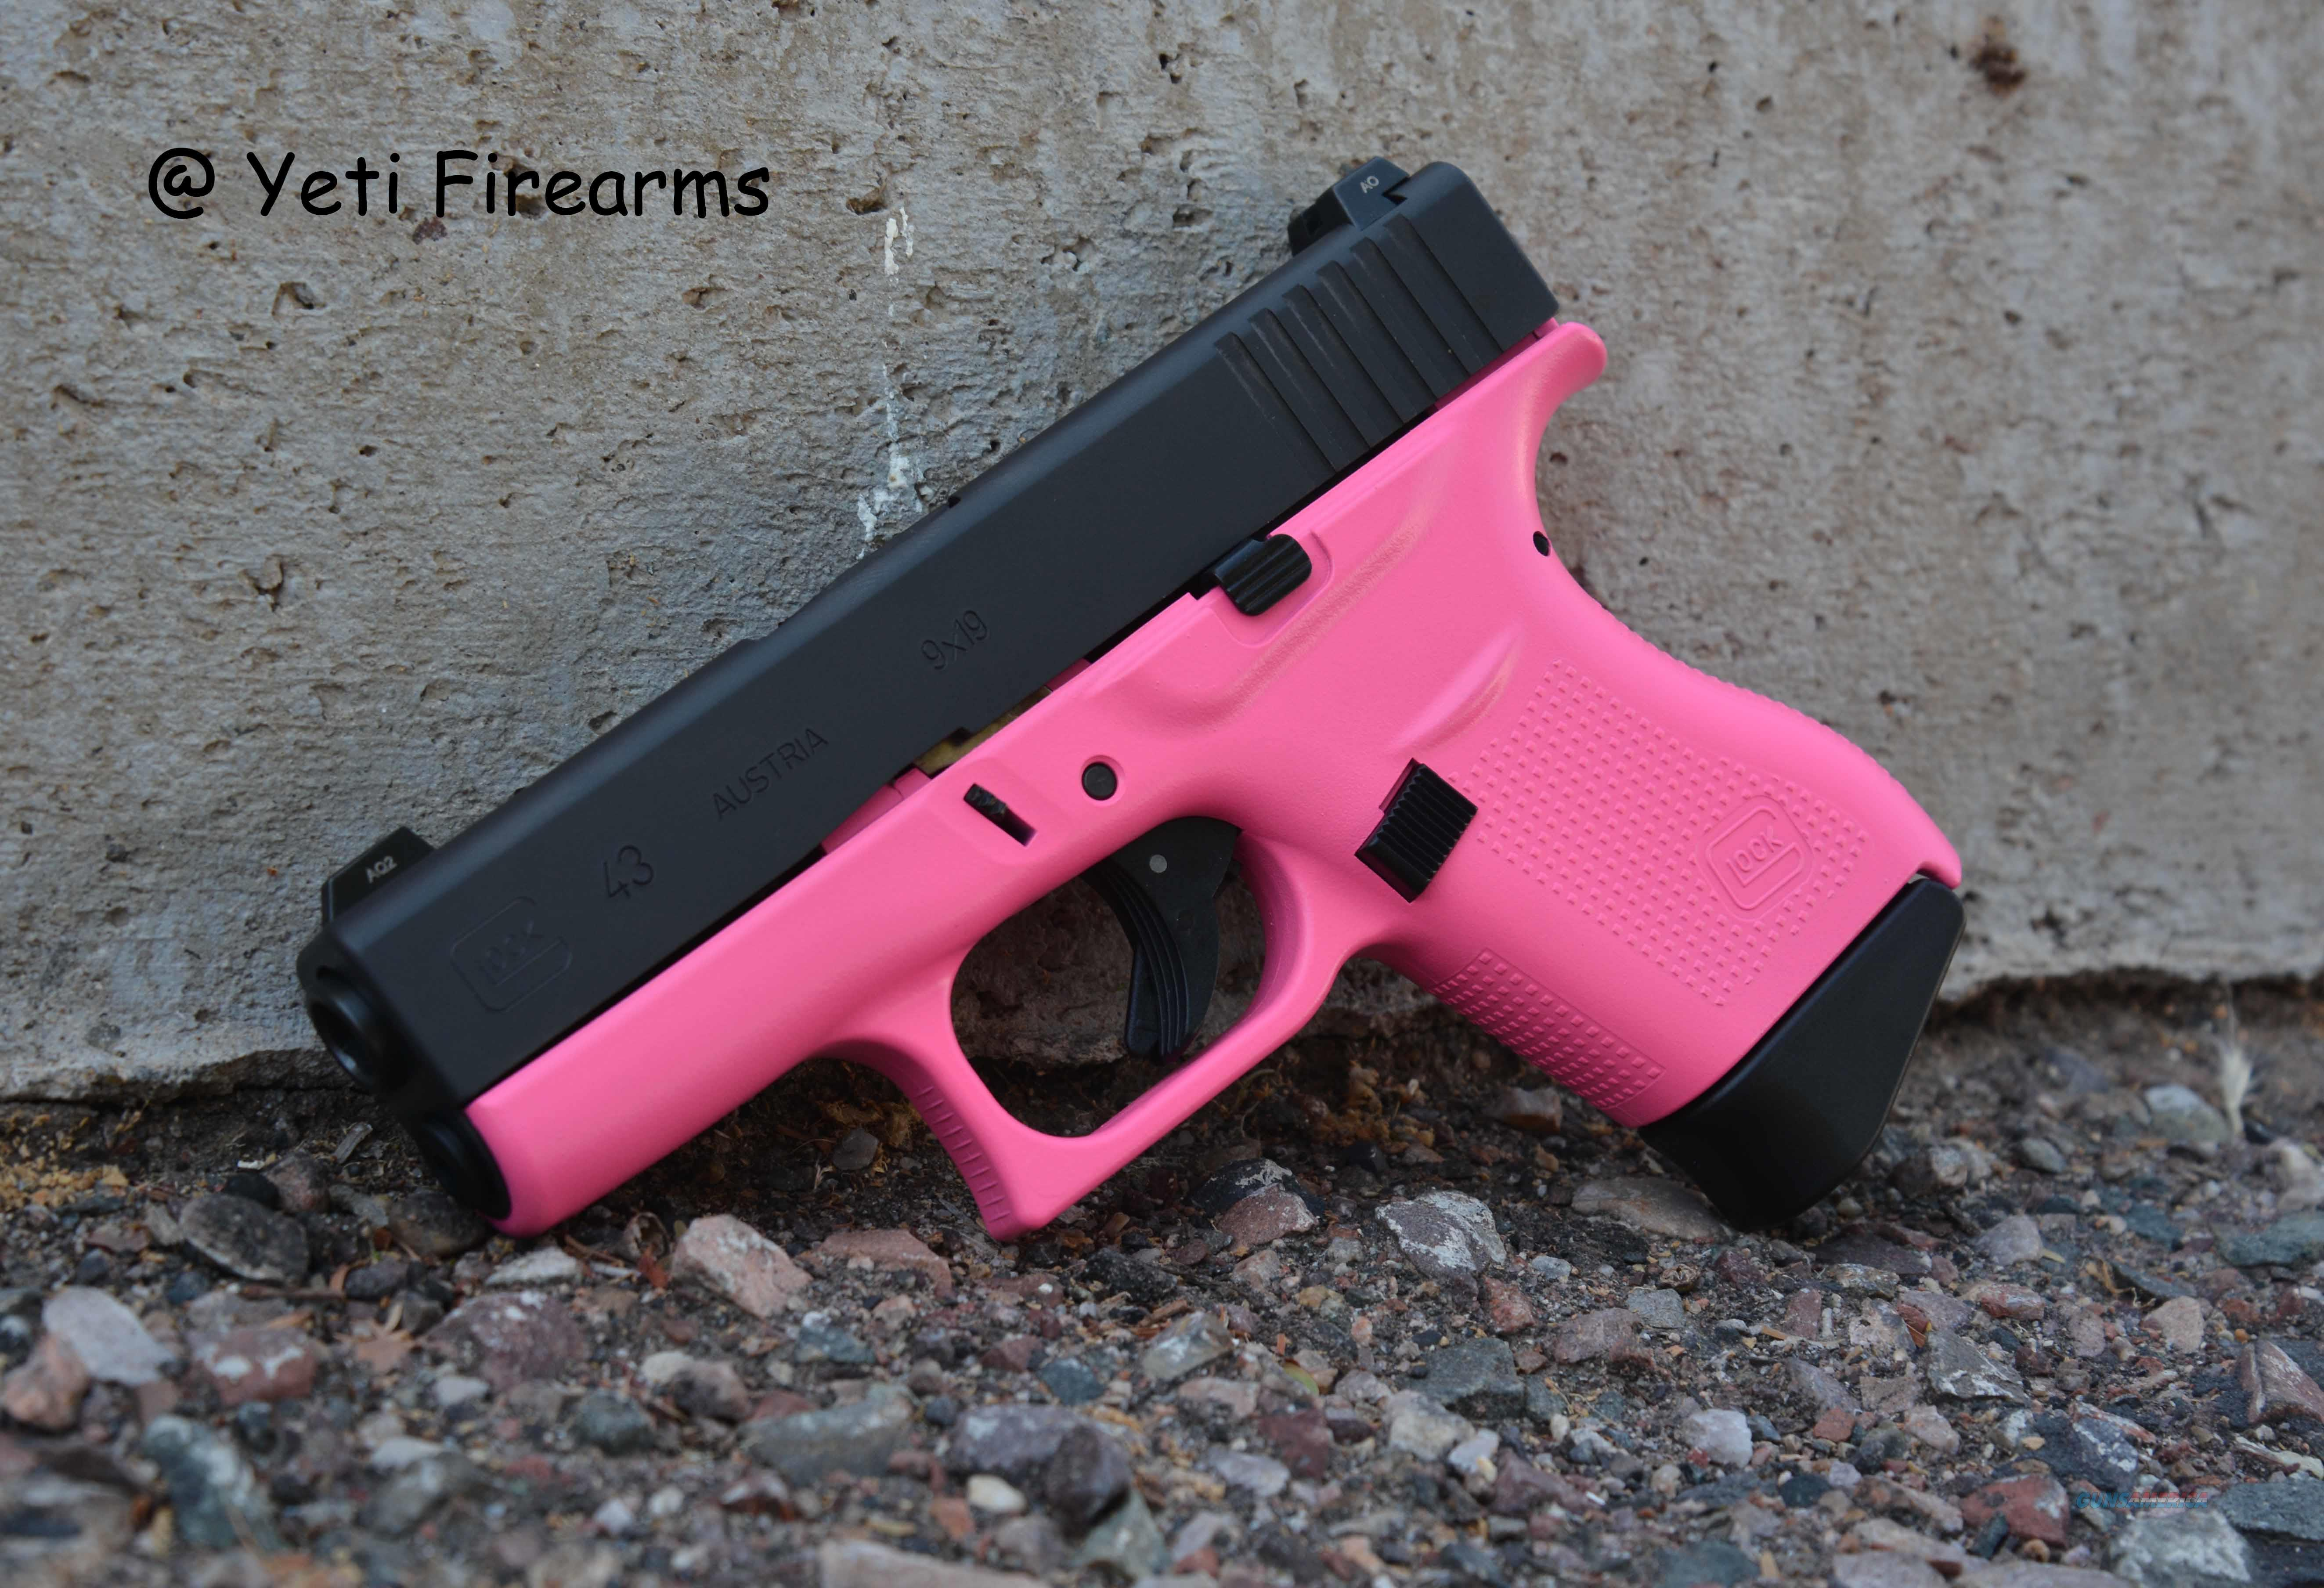 X-Werks Glock 43 9mm Hot Pink W/ Glock Night Sight  Guns > Pistols > Glock Pistols > 43